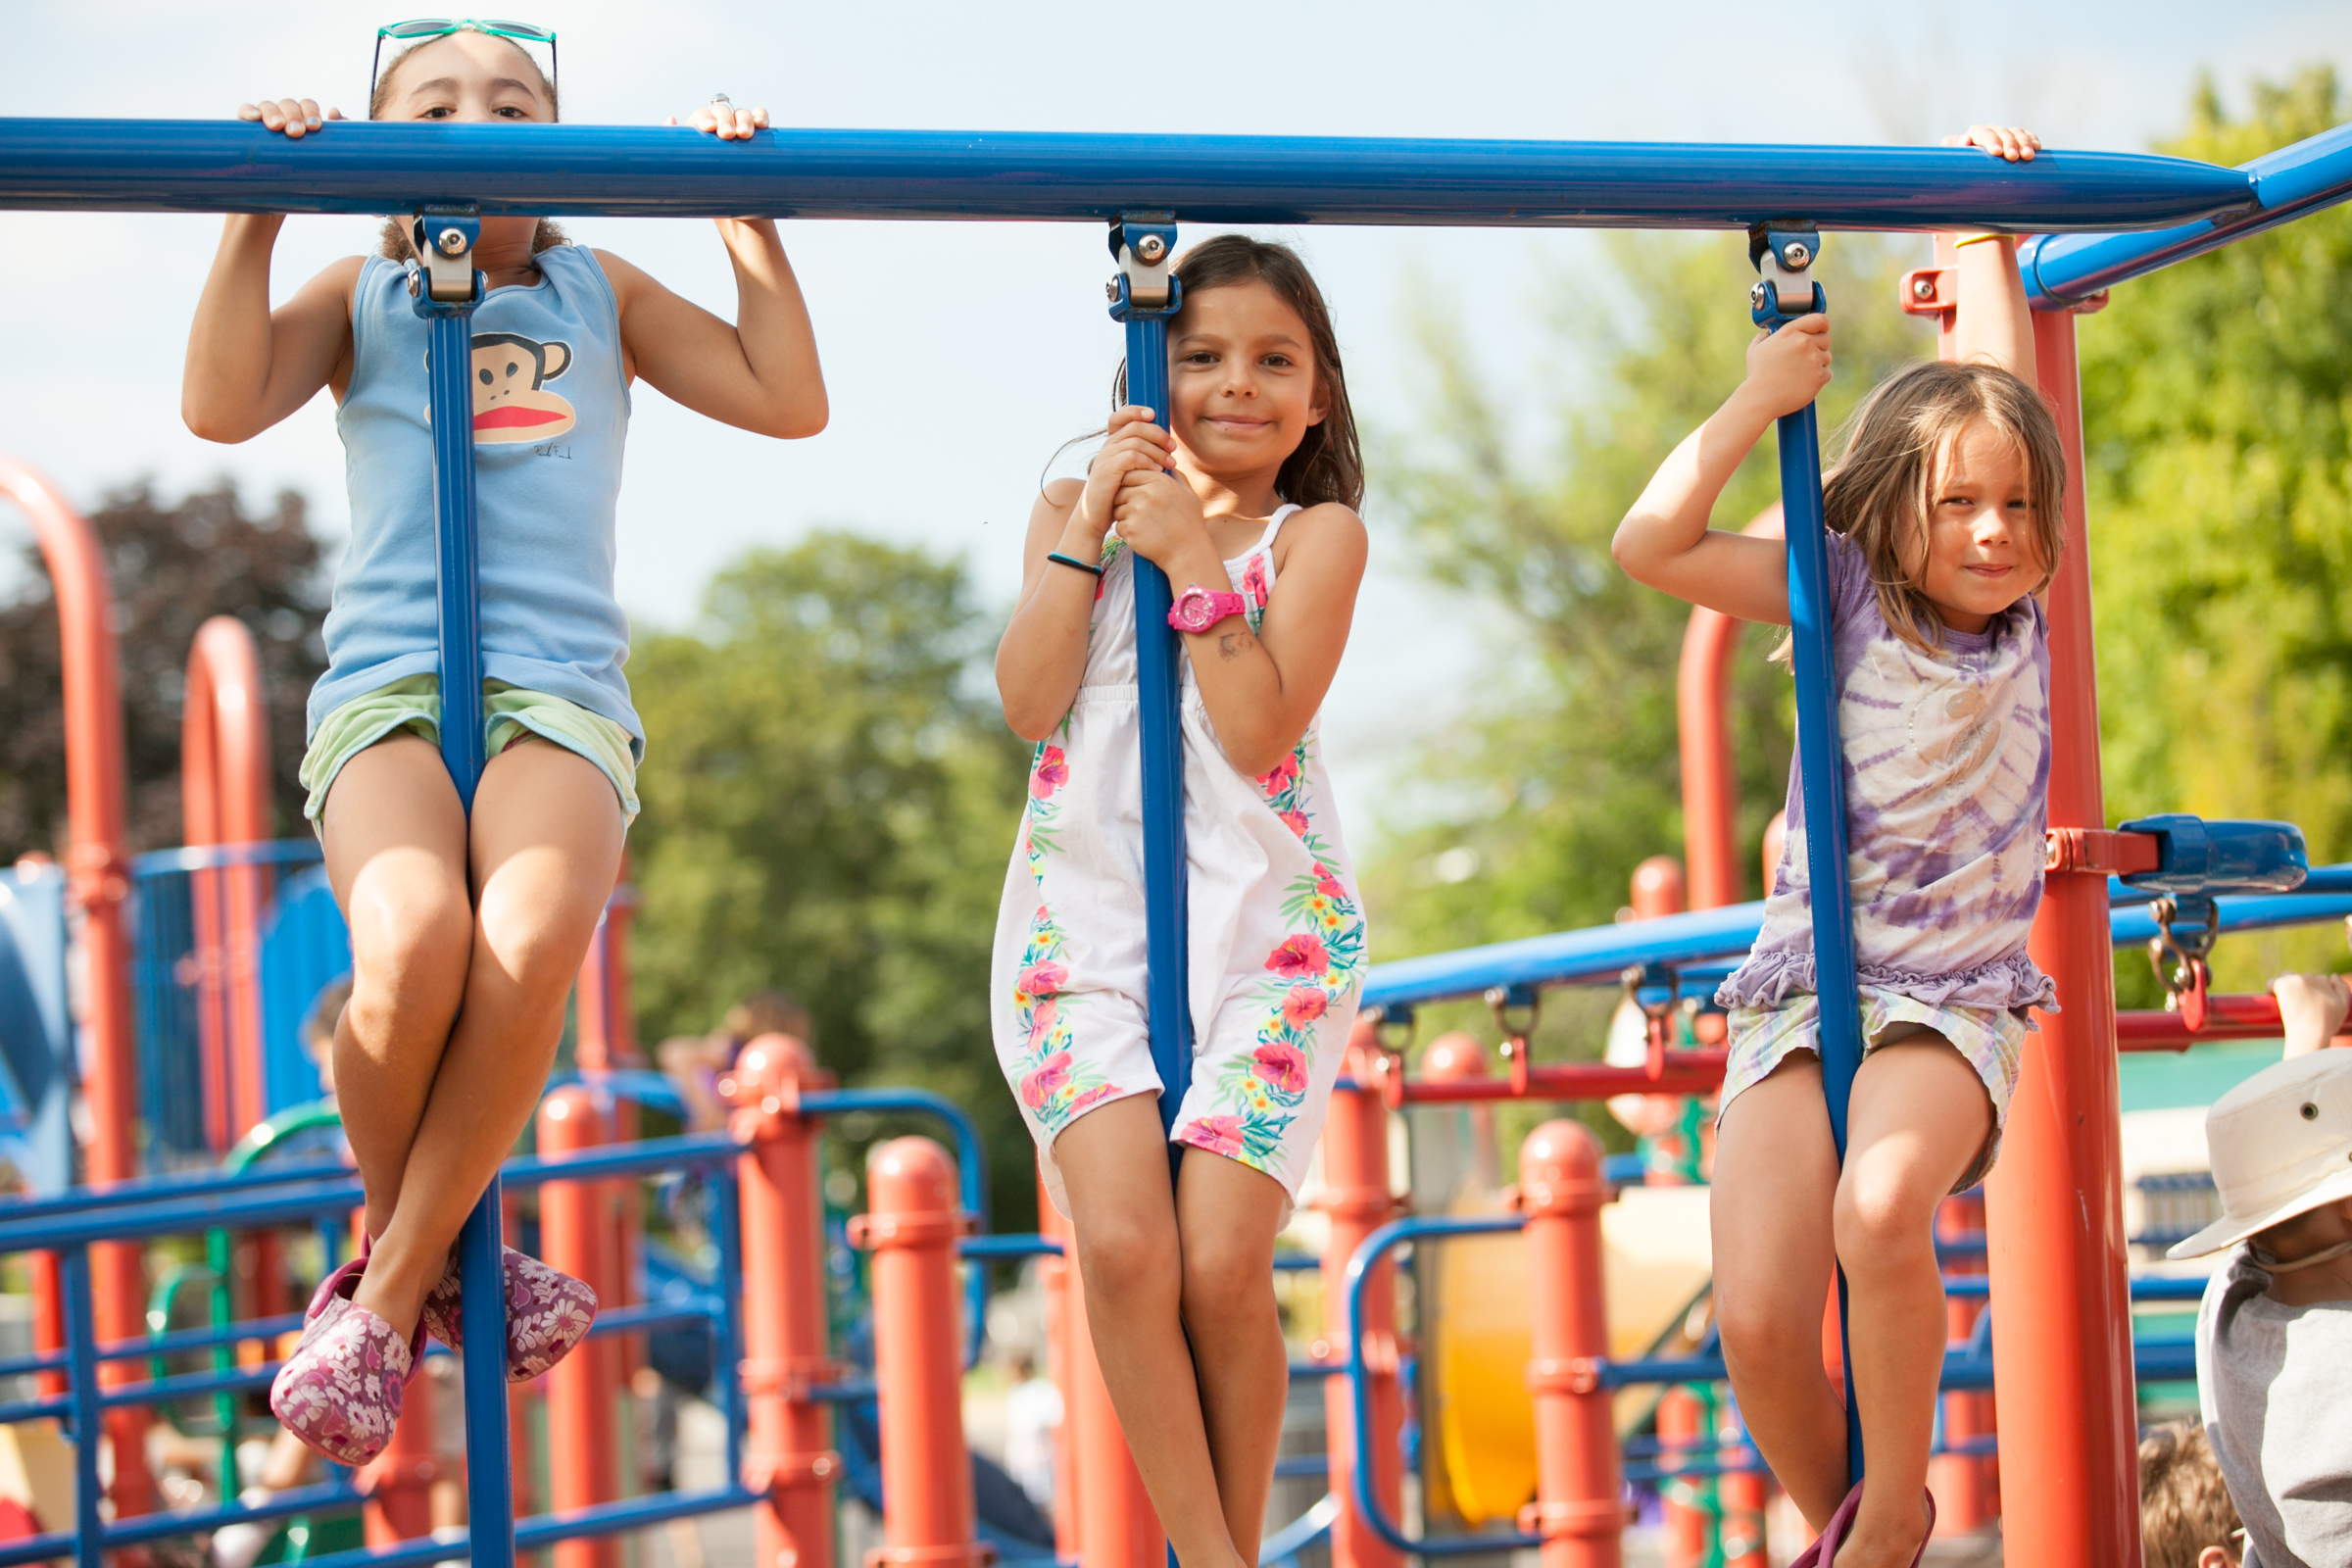 three girls on playground equipment